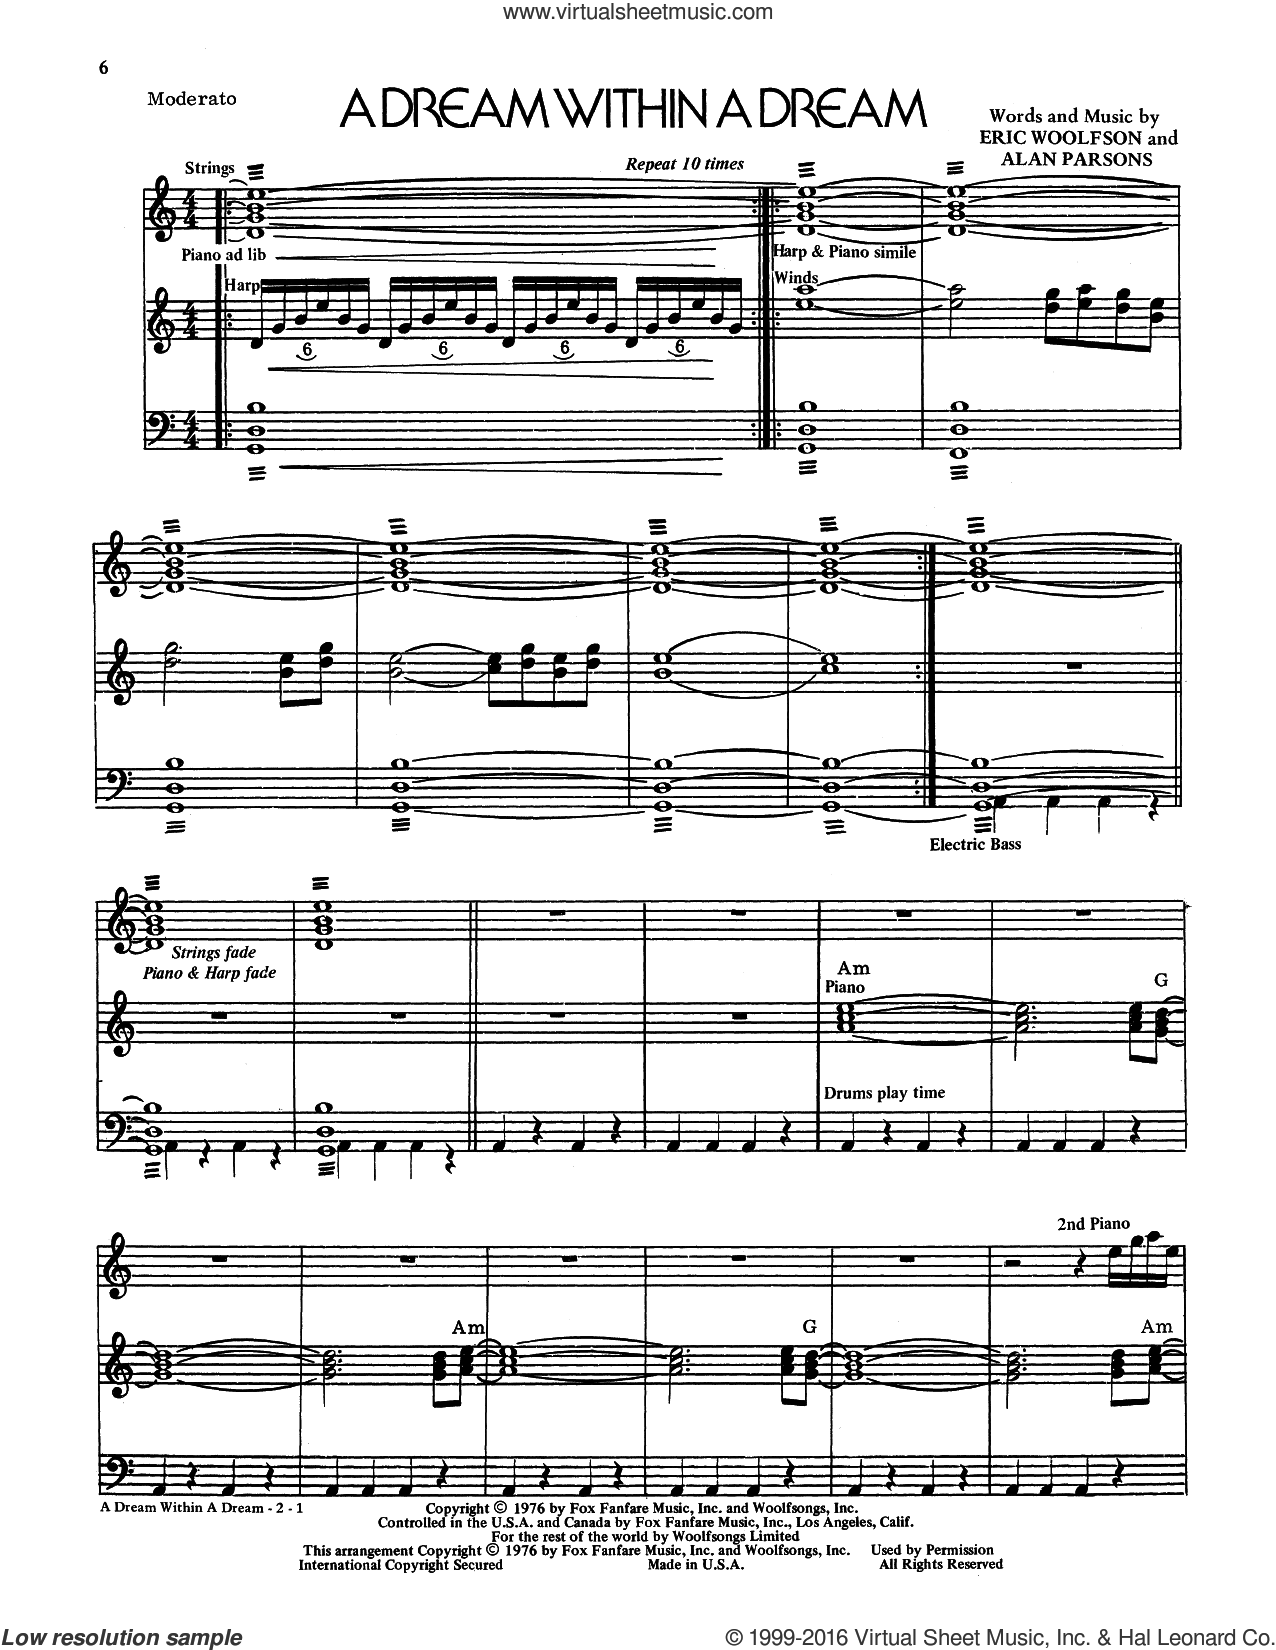 A Dream Within A Dream sheet music for voice and piano by Alan Parsons Project, Alan Parsons and Eric Woolfson, intermediate skill level